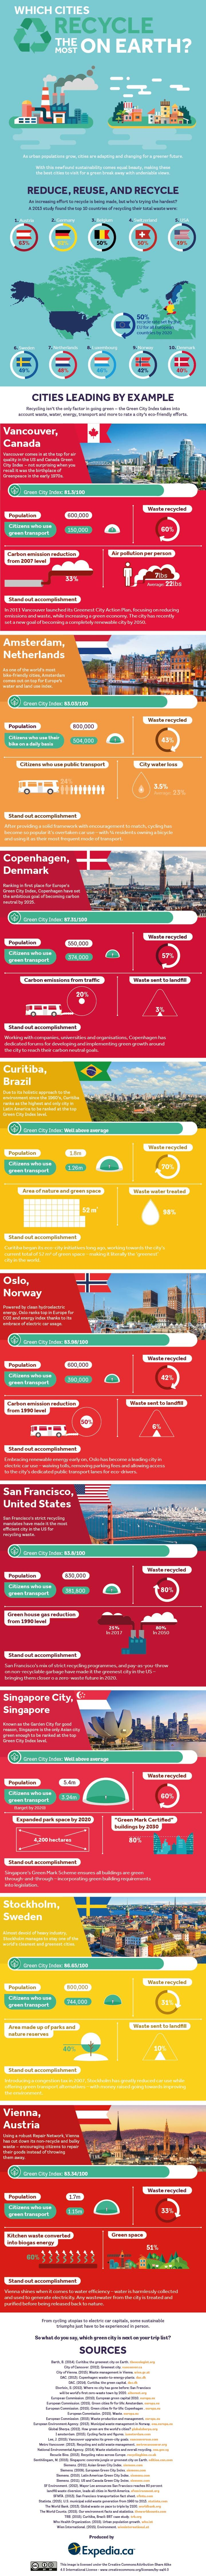 Which cities Recycle the most on Earth [Infographic]   ecogreenlove